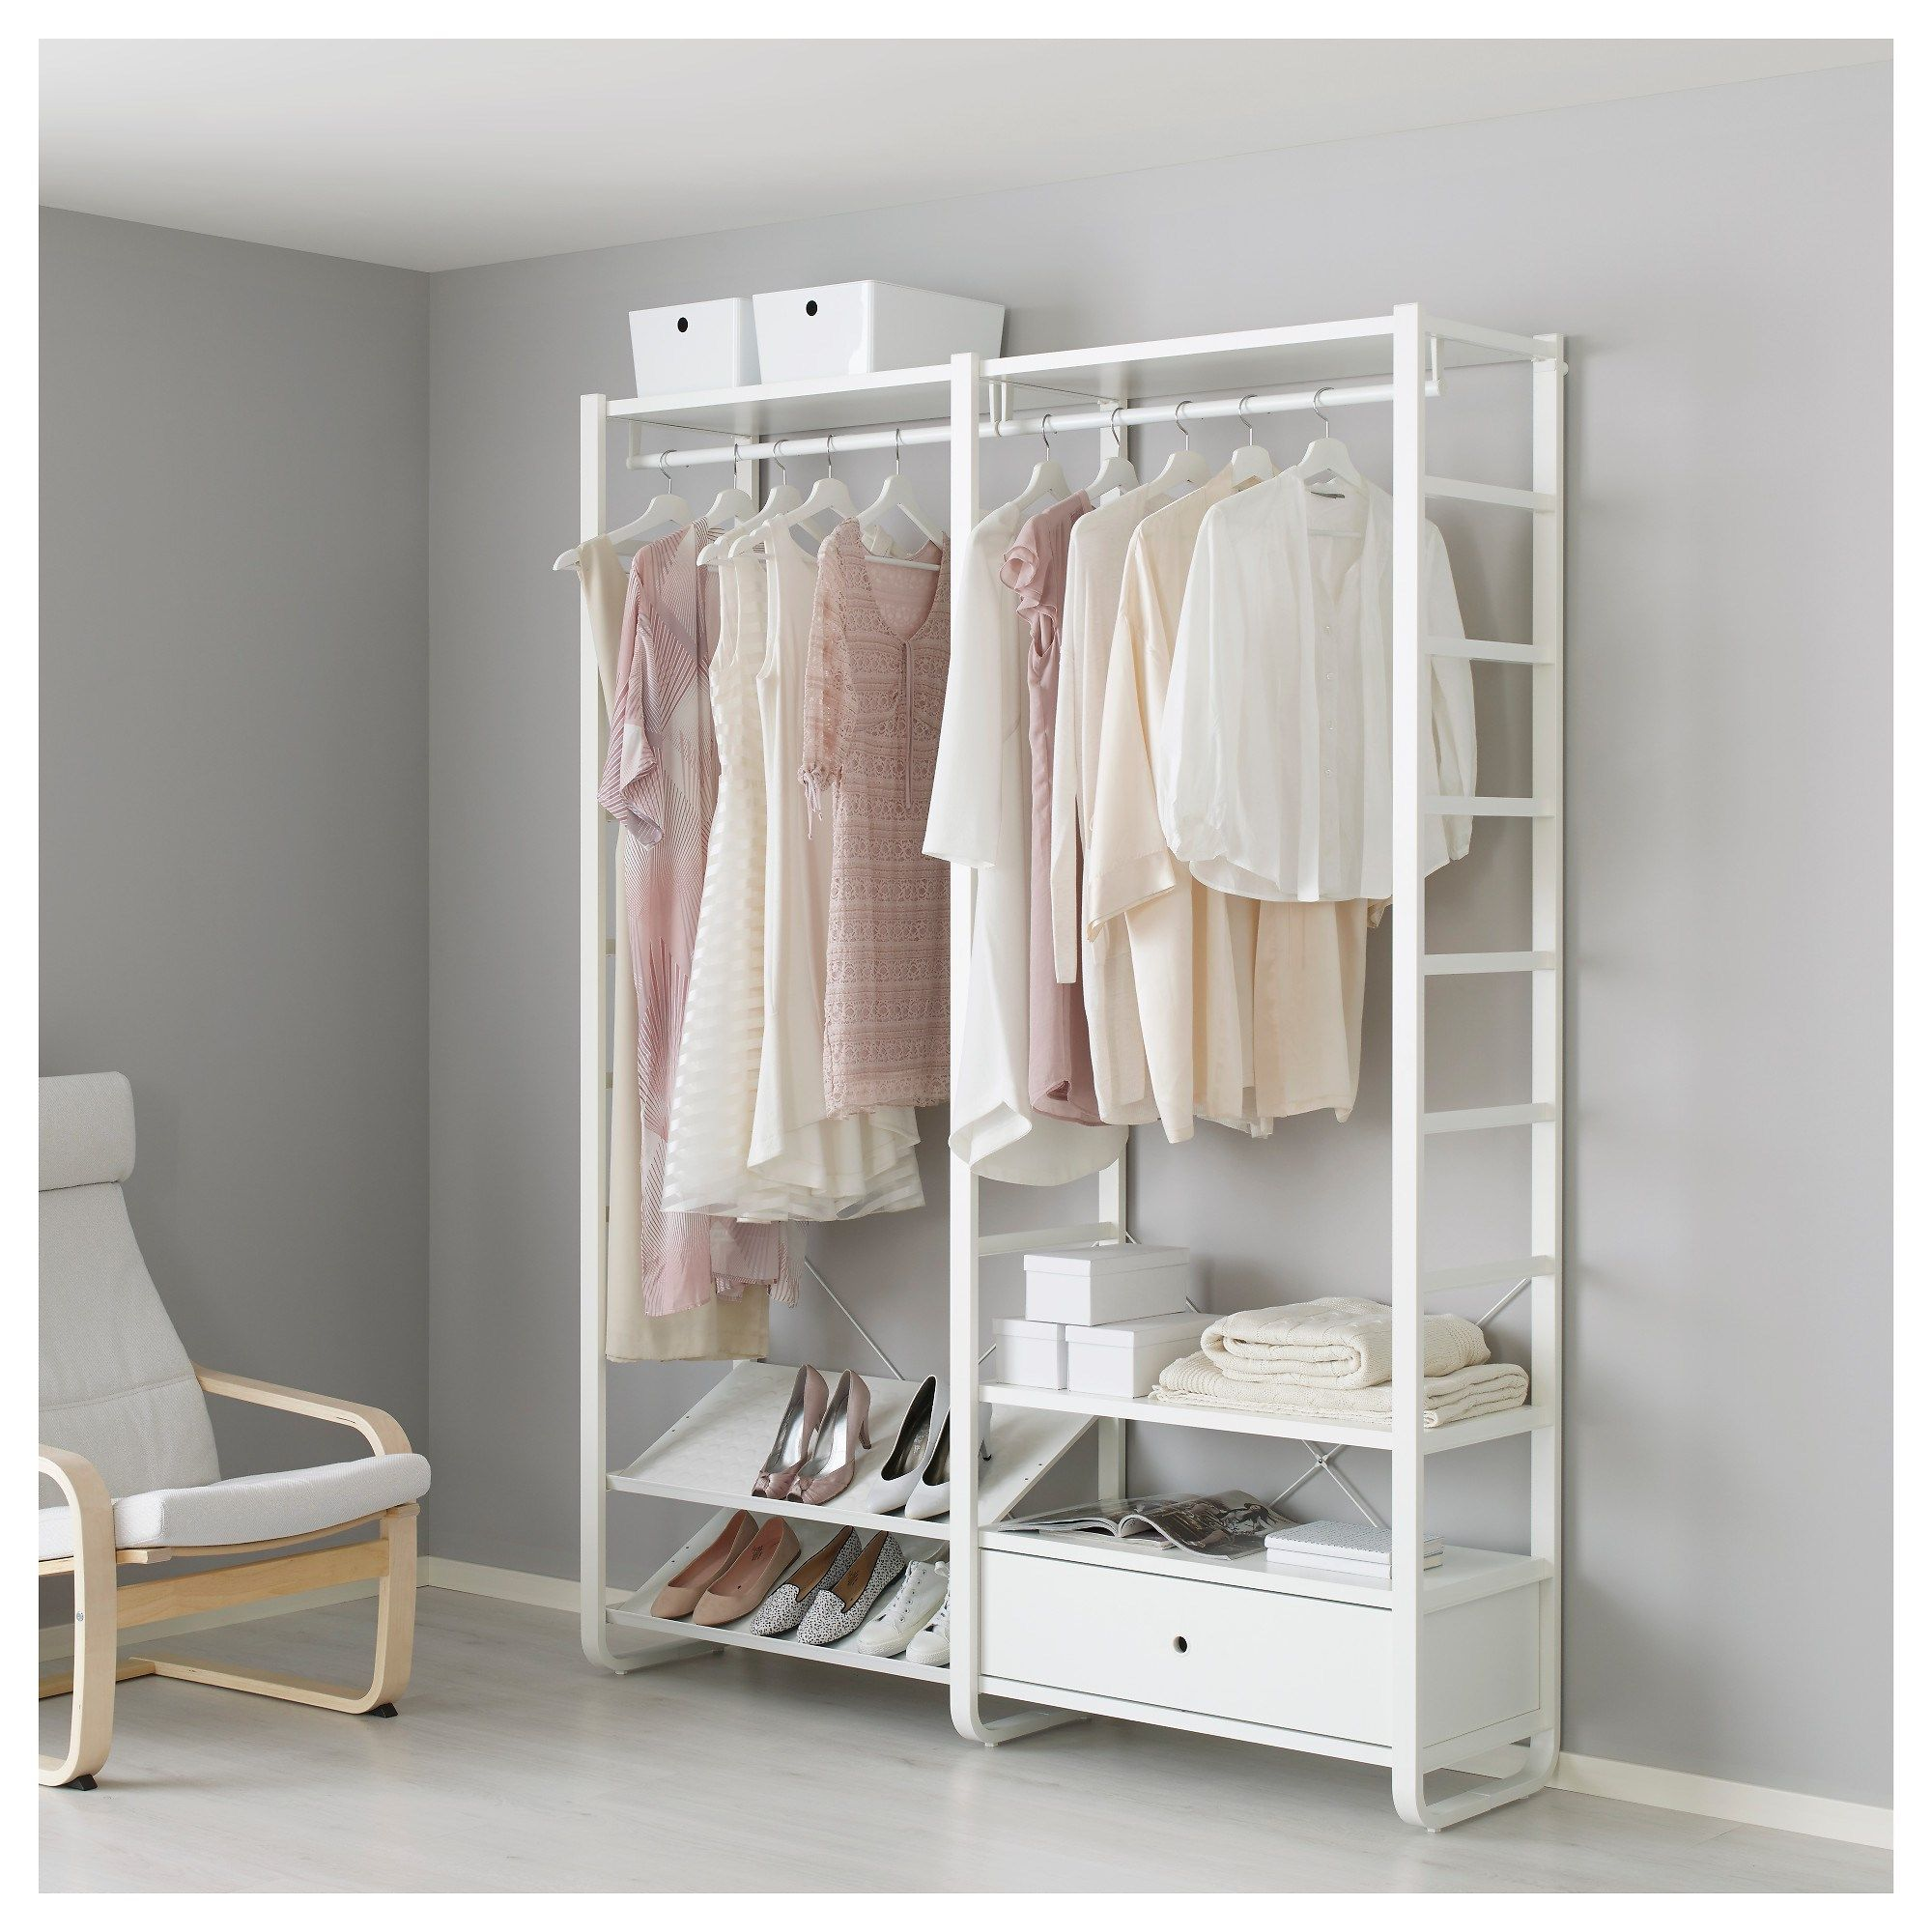 ELVARLI Open Storage Unit White 165x40x216 Cm | IKEA Bedroom